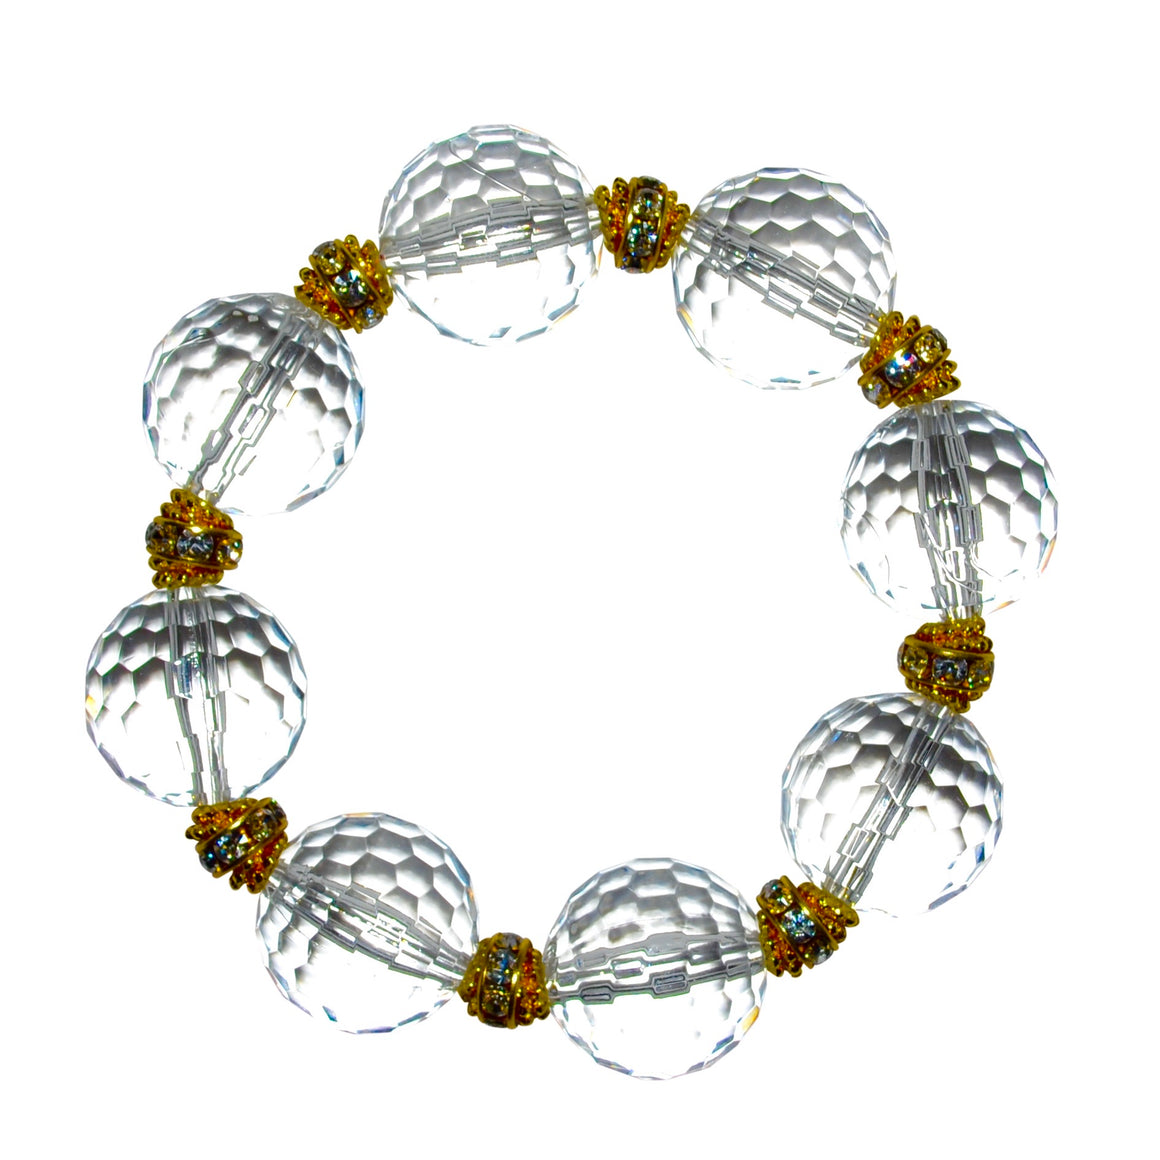 LUCITE STATEMENT BRACELET IN FACETED CLEAR LUCITE